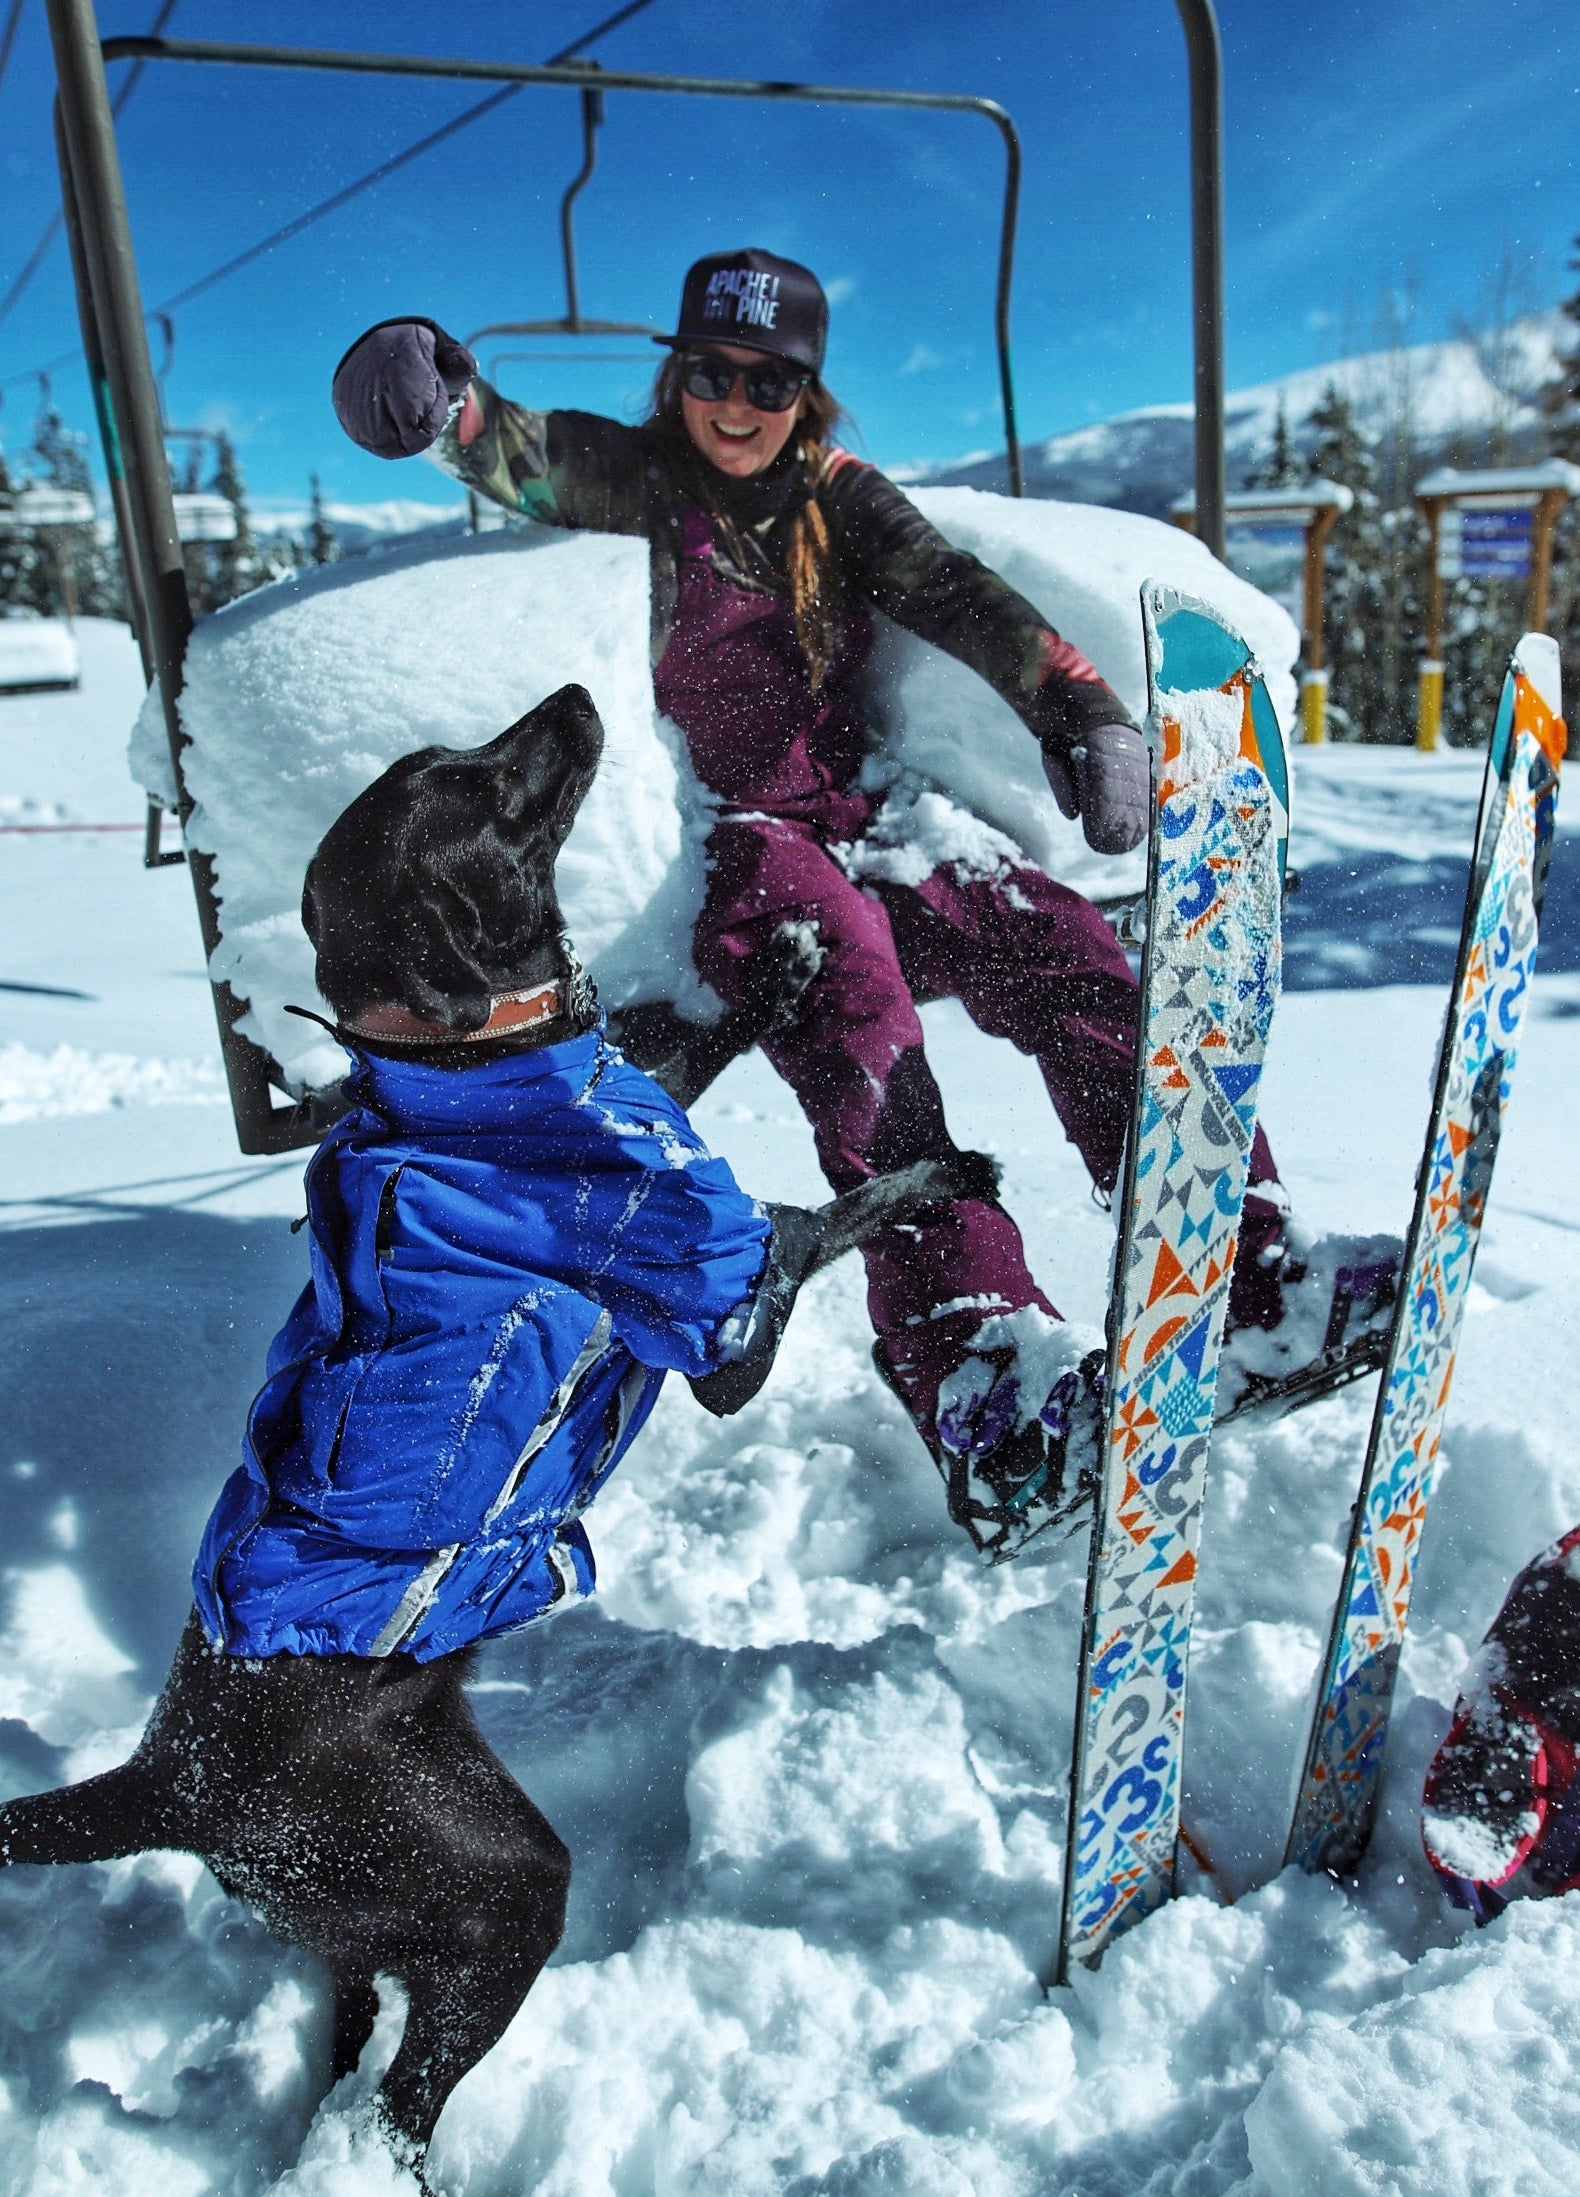 Leanne gets on a ski lift while her dog, Stout, looks up at her from the snow.